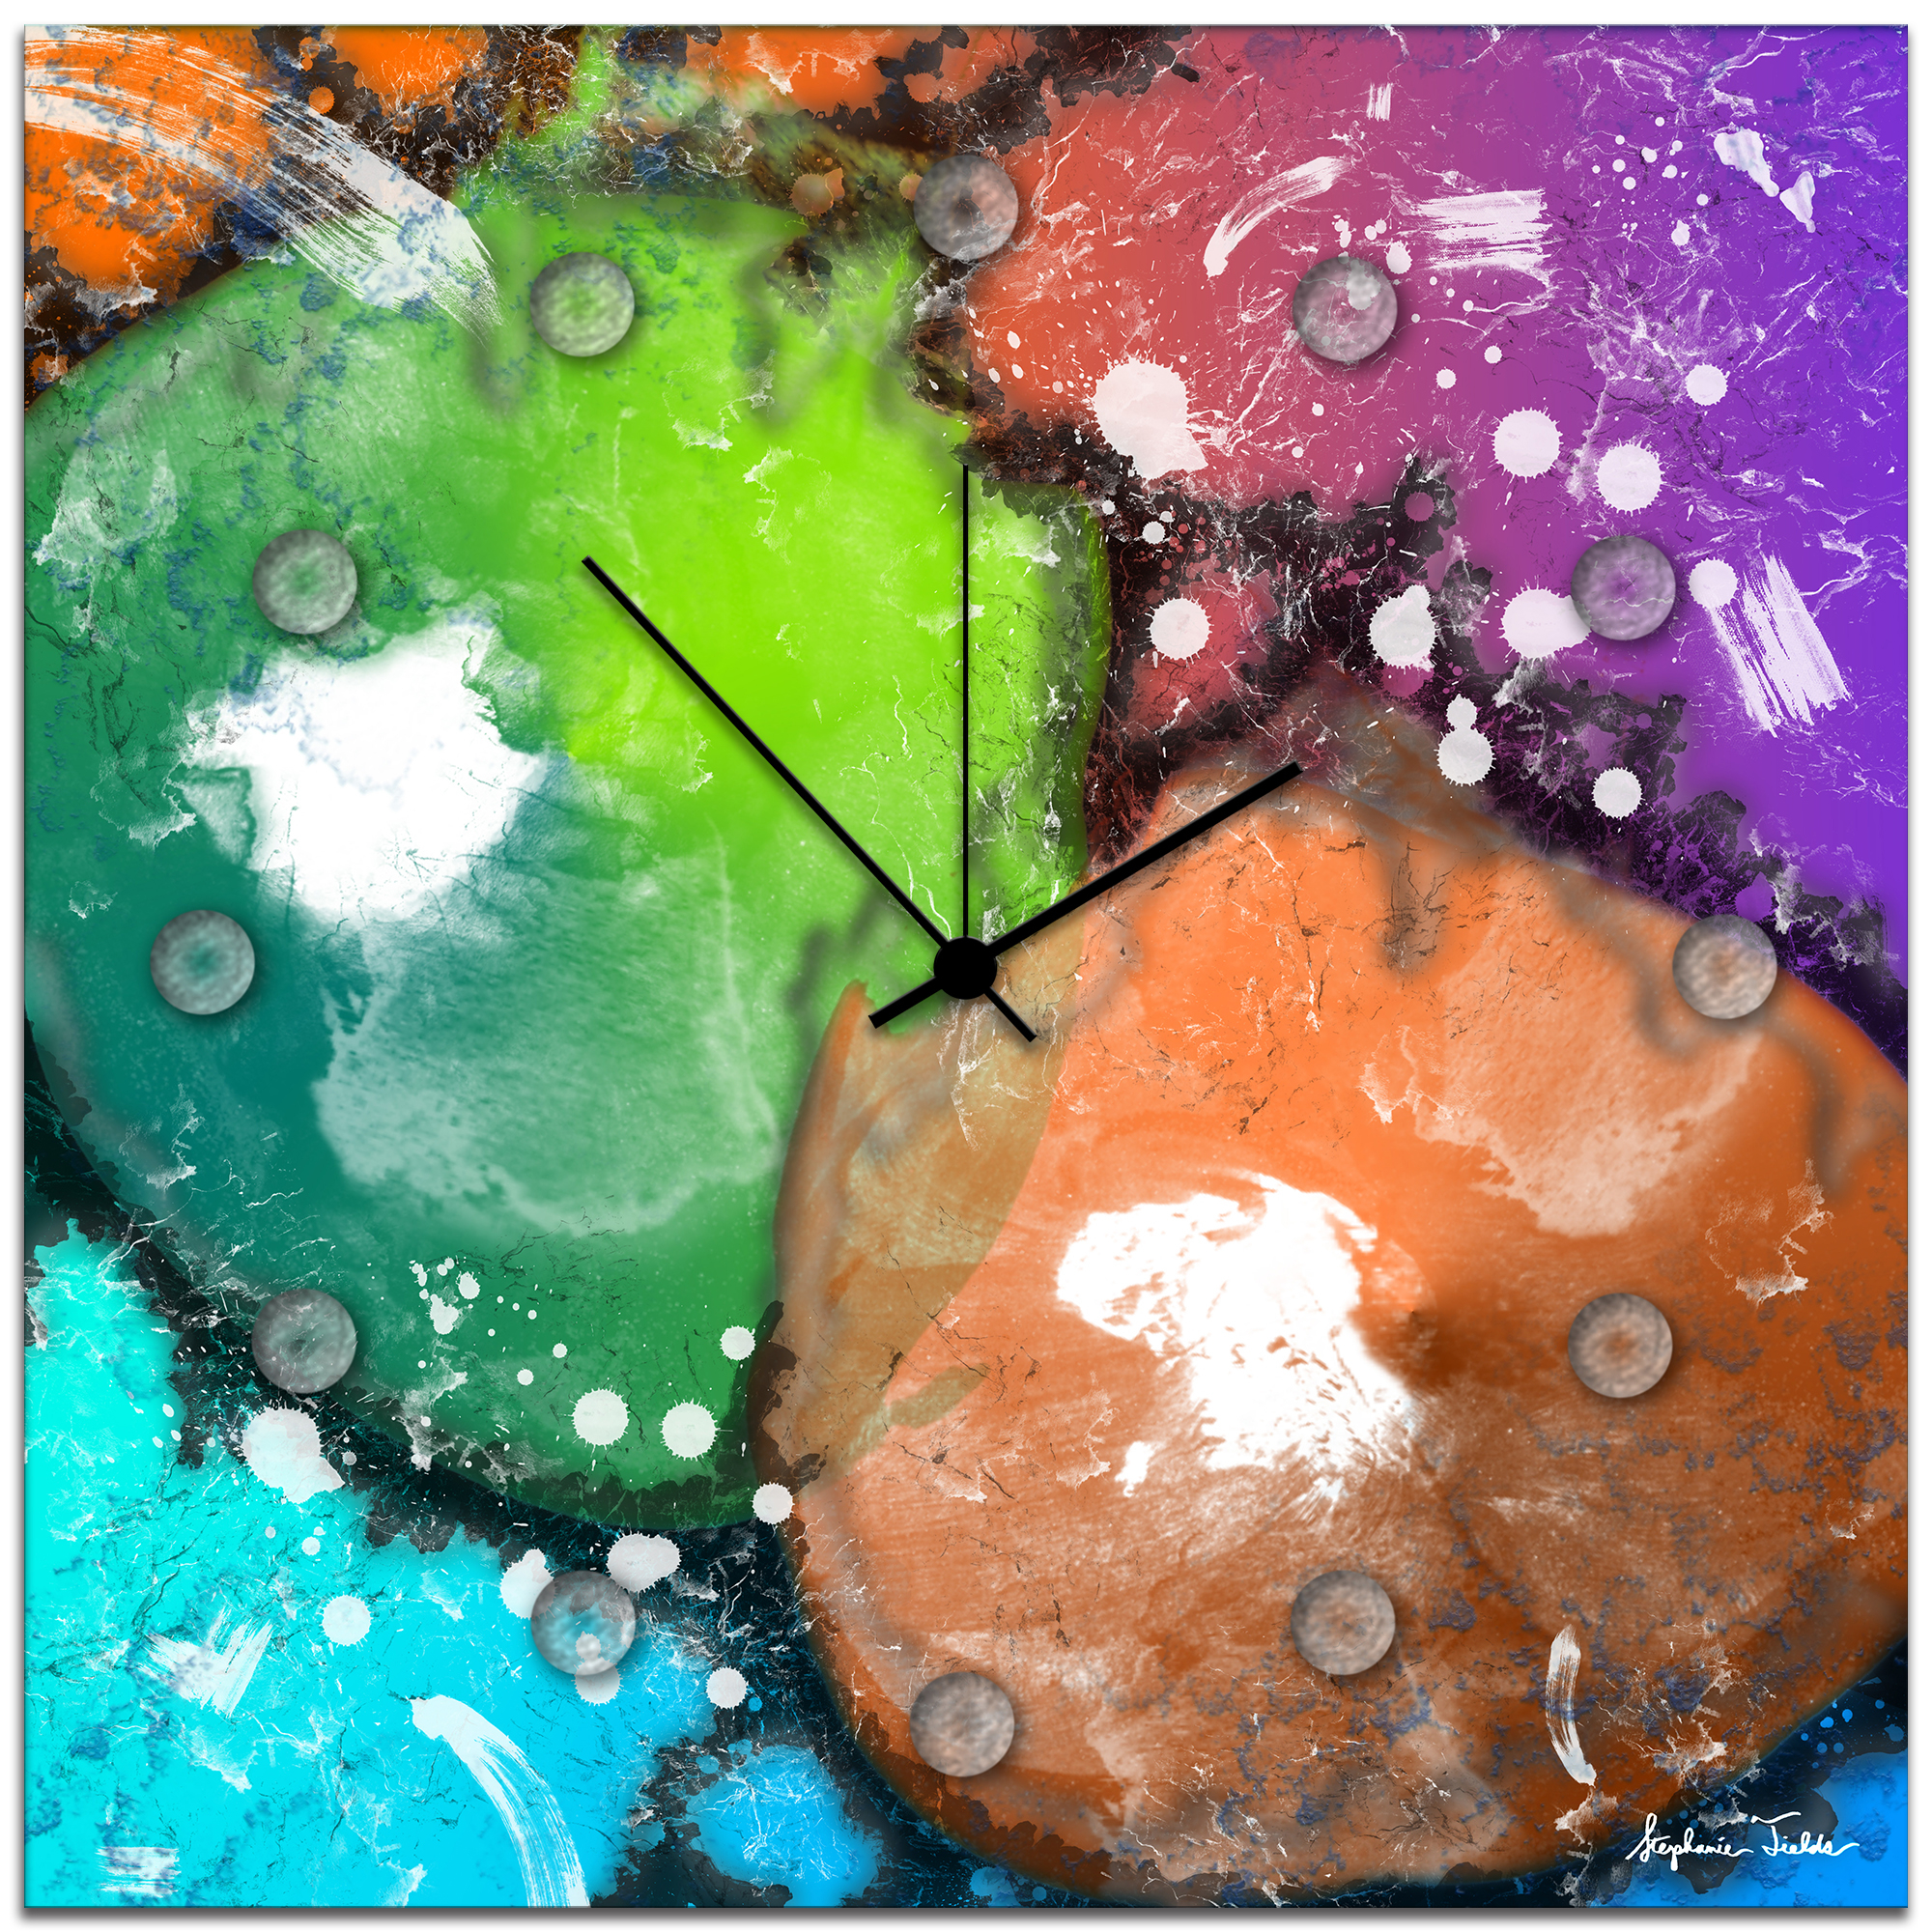 Neon Colors Wall Clock 'Radioactive Clock' 22x22 in. - Colorful Abstract Clocks, Rainbow Wall Decor, Contemporary Multicolor Metal Wall Art